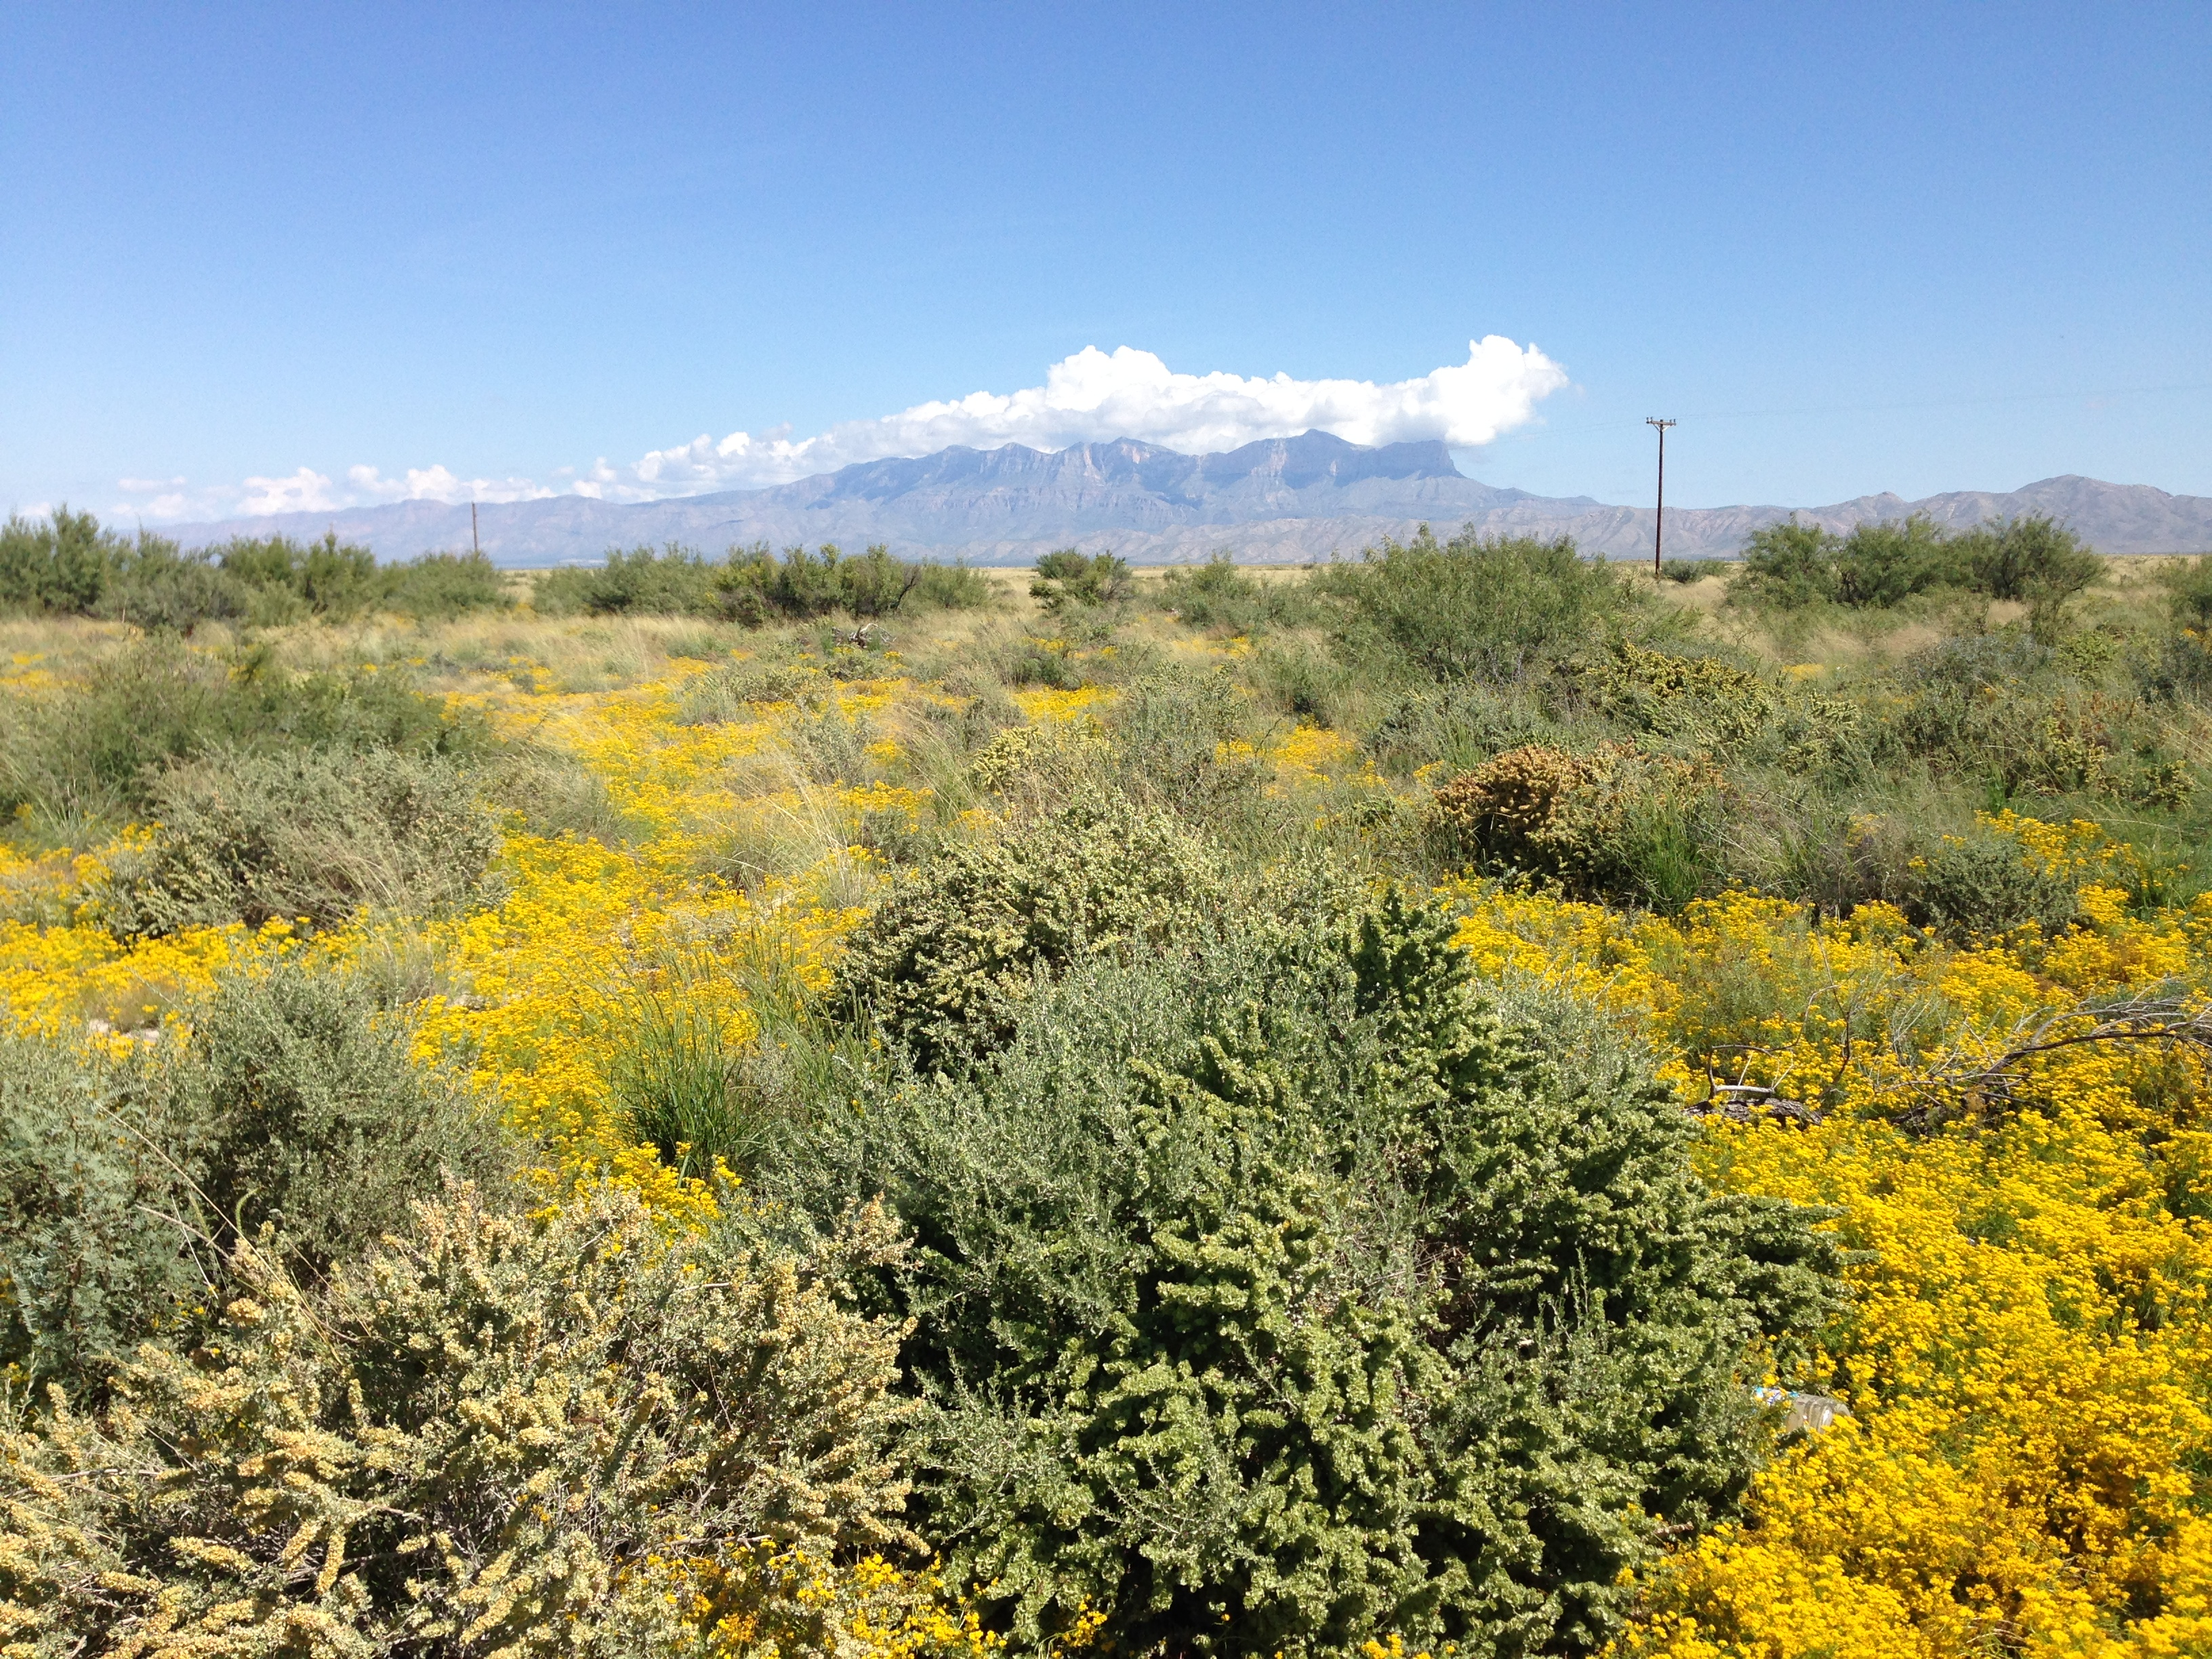 Guadalupe Peak from a Distance